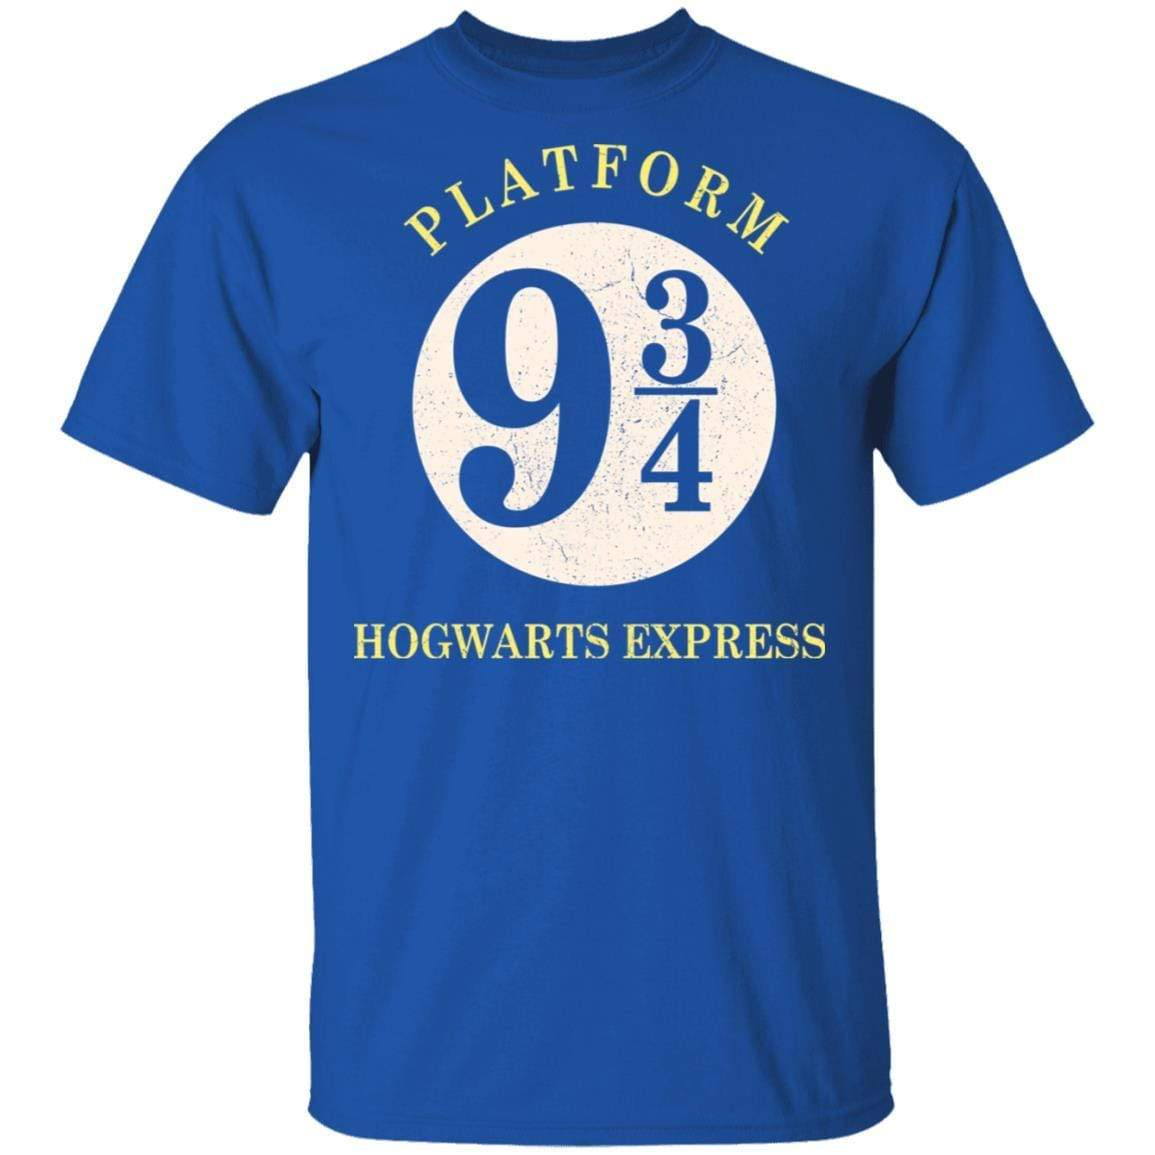 Platform 9 3-4 Hogwarts Express Harry Potter T-Shirts, Hoodies 1049-9971-88445024-48286 - Tee Ript